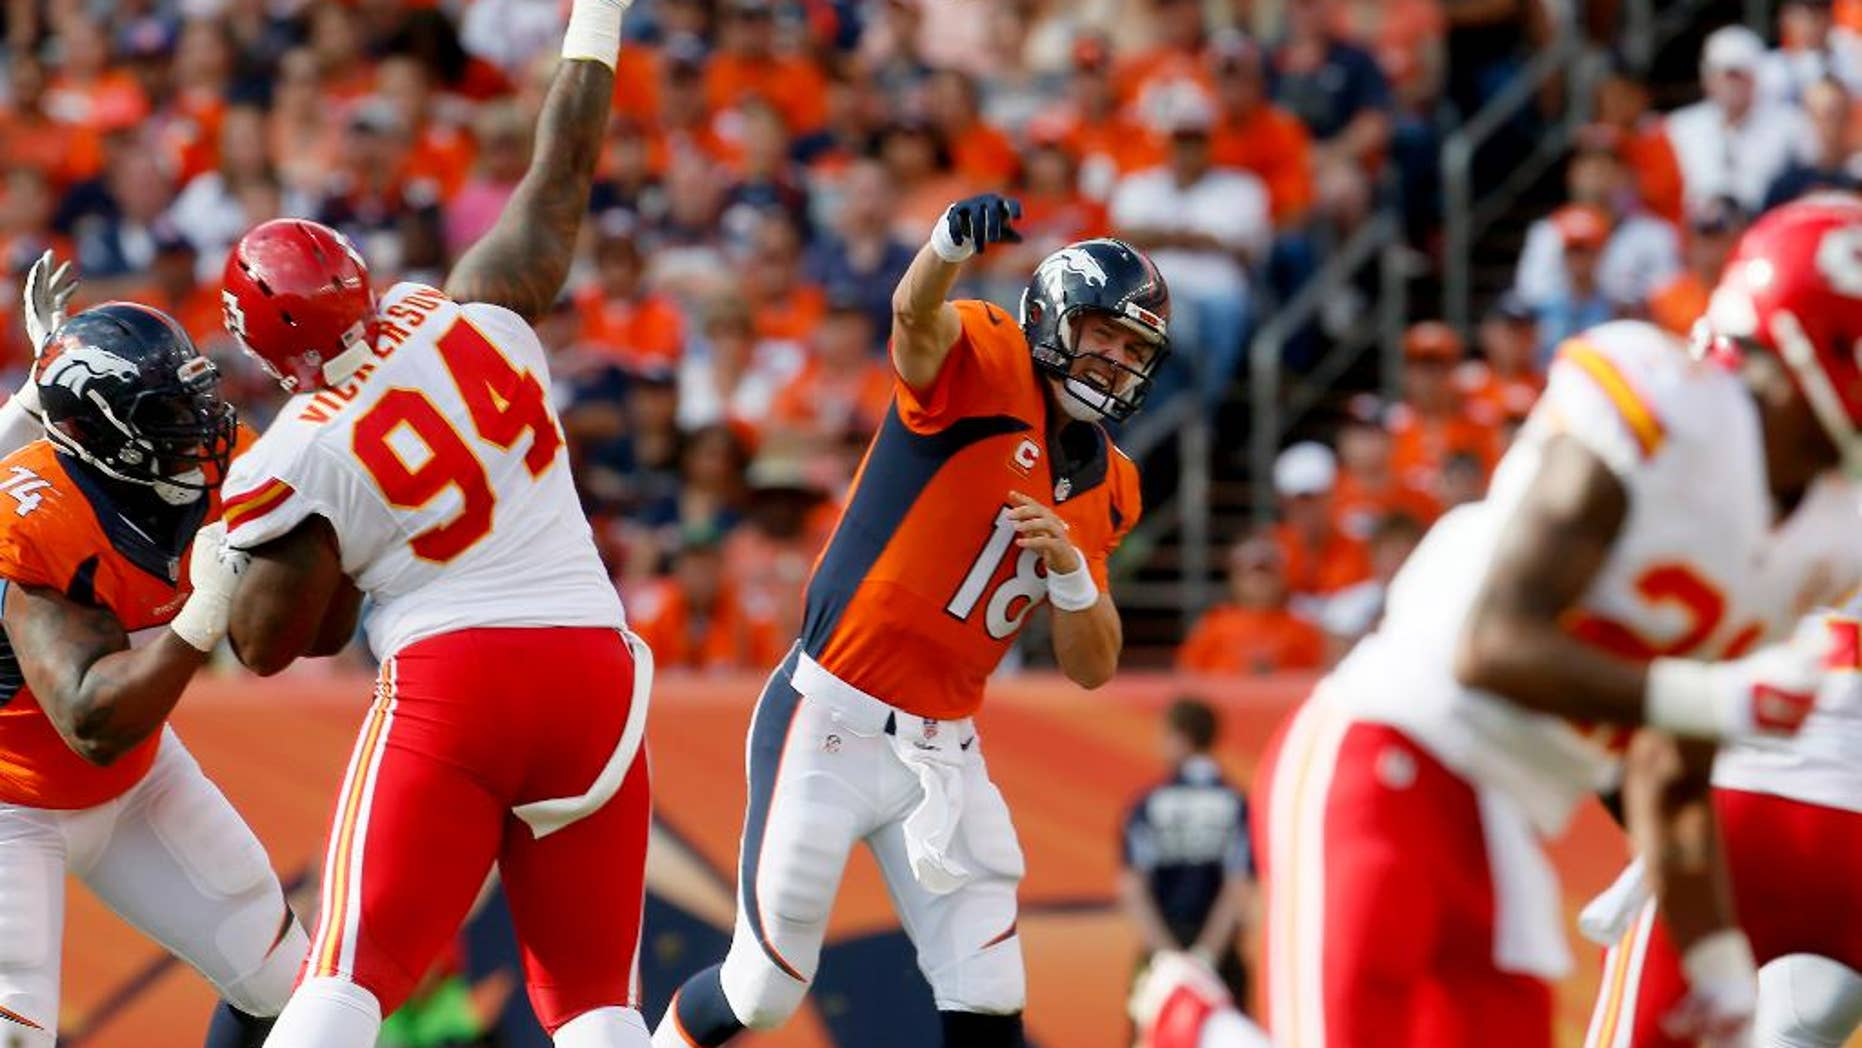 Denver Broncos quarterback Peyton Manning (18) throws against the Kansas City Chiefs during the second half of an NFL football game, Sunday, Sept. 14, 2014, in Denver. (AP Photo/Joe Mahoney)